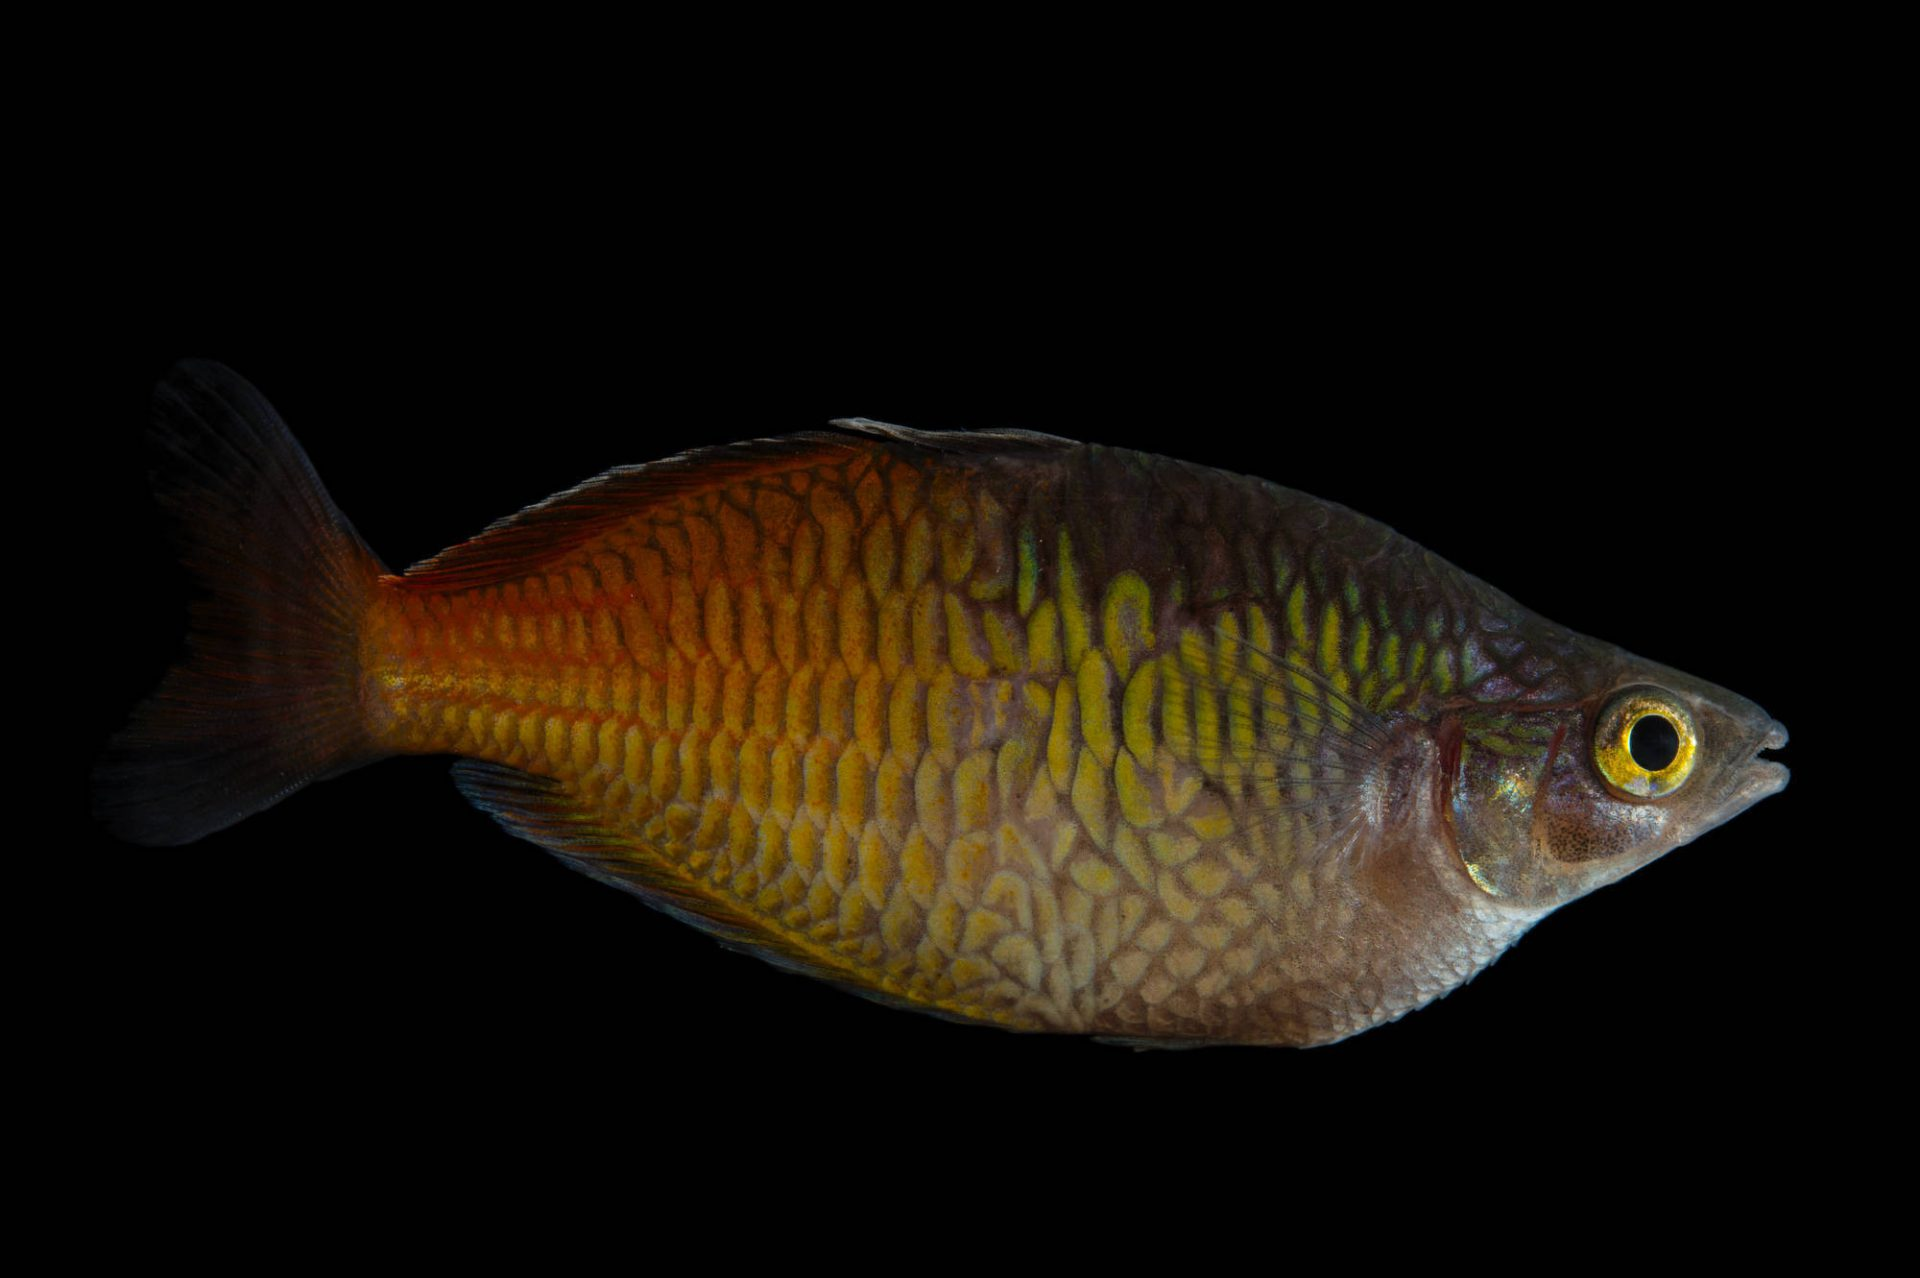 Picture of an endangered Boeseman's rainbowfish (Melanotaenia boesemani) at the Oklahoma City Zoo.